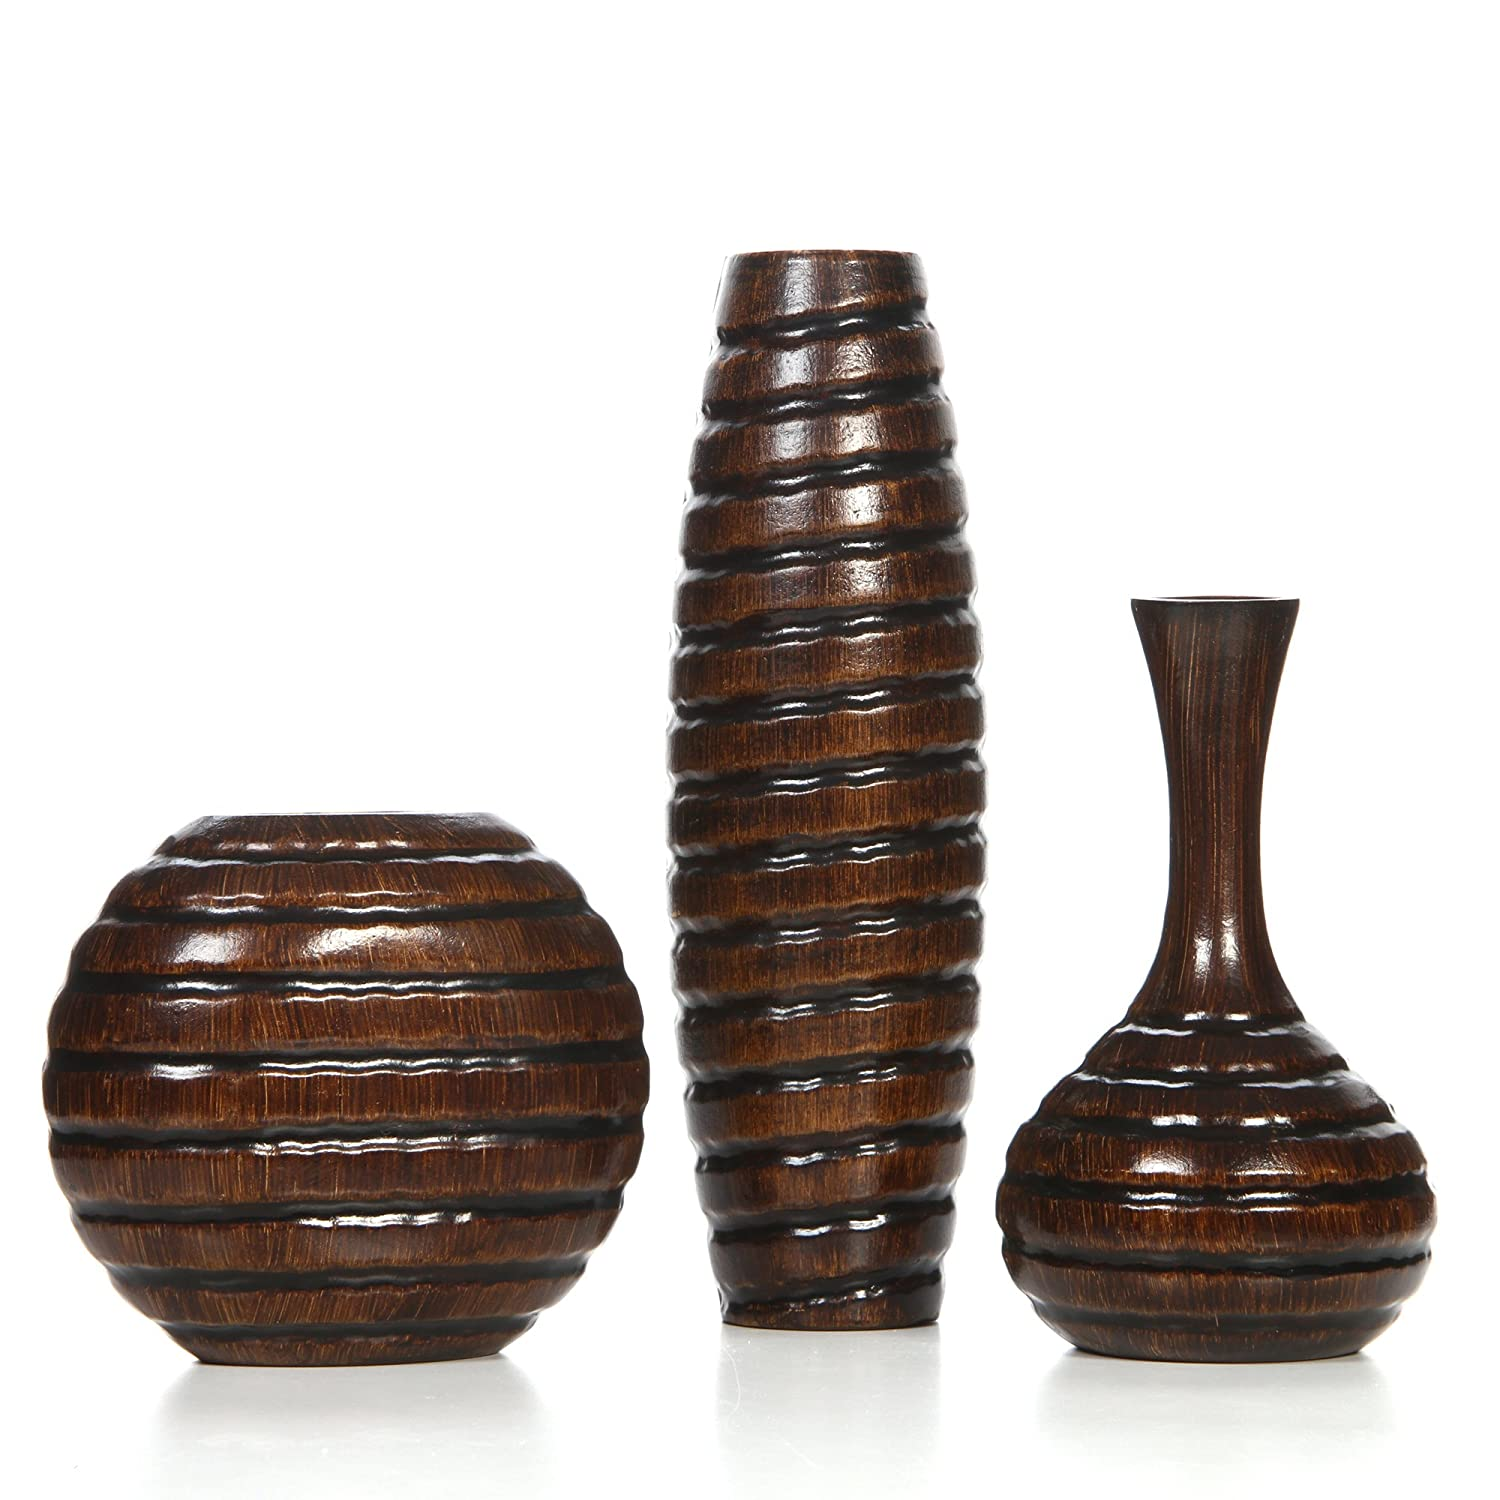 "Hosley Set of 3 Carved Wood Vases; Small 6"", Medium 8"" and Tall 12"" High. Ideal Gift for Weeding and Use for Home/Office Decor, Fireplace, Floor Vases, Spa, Aromatherapy Settings O9"